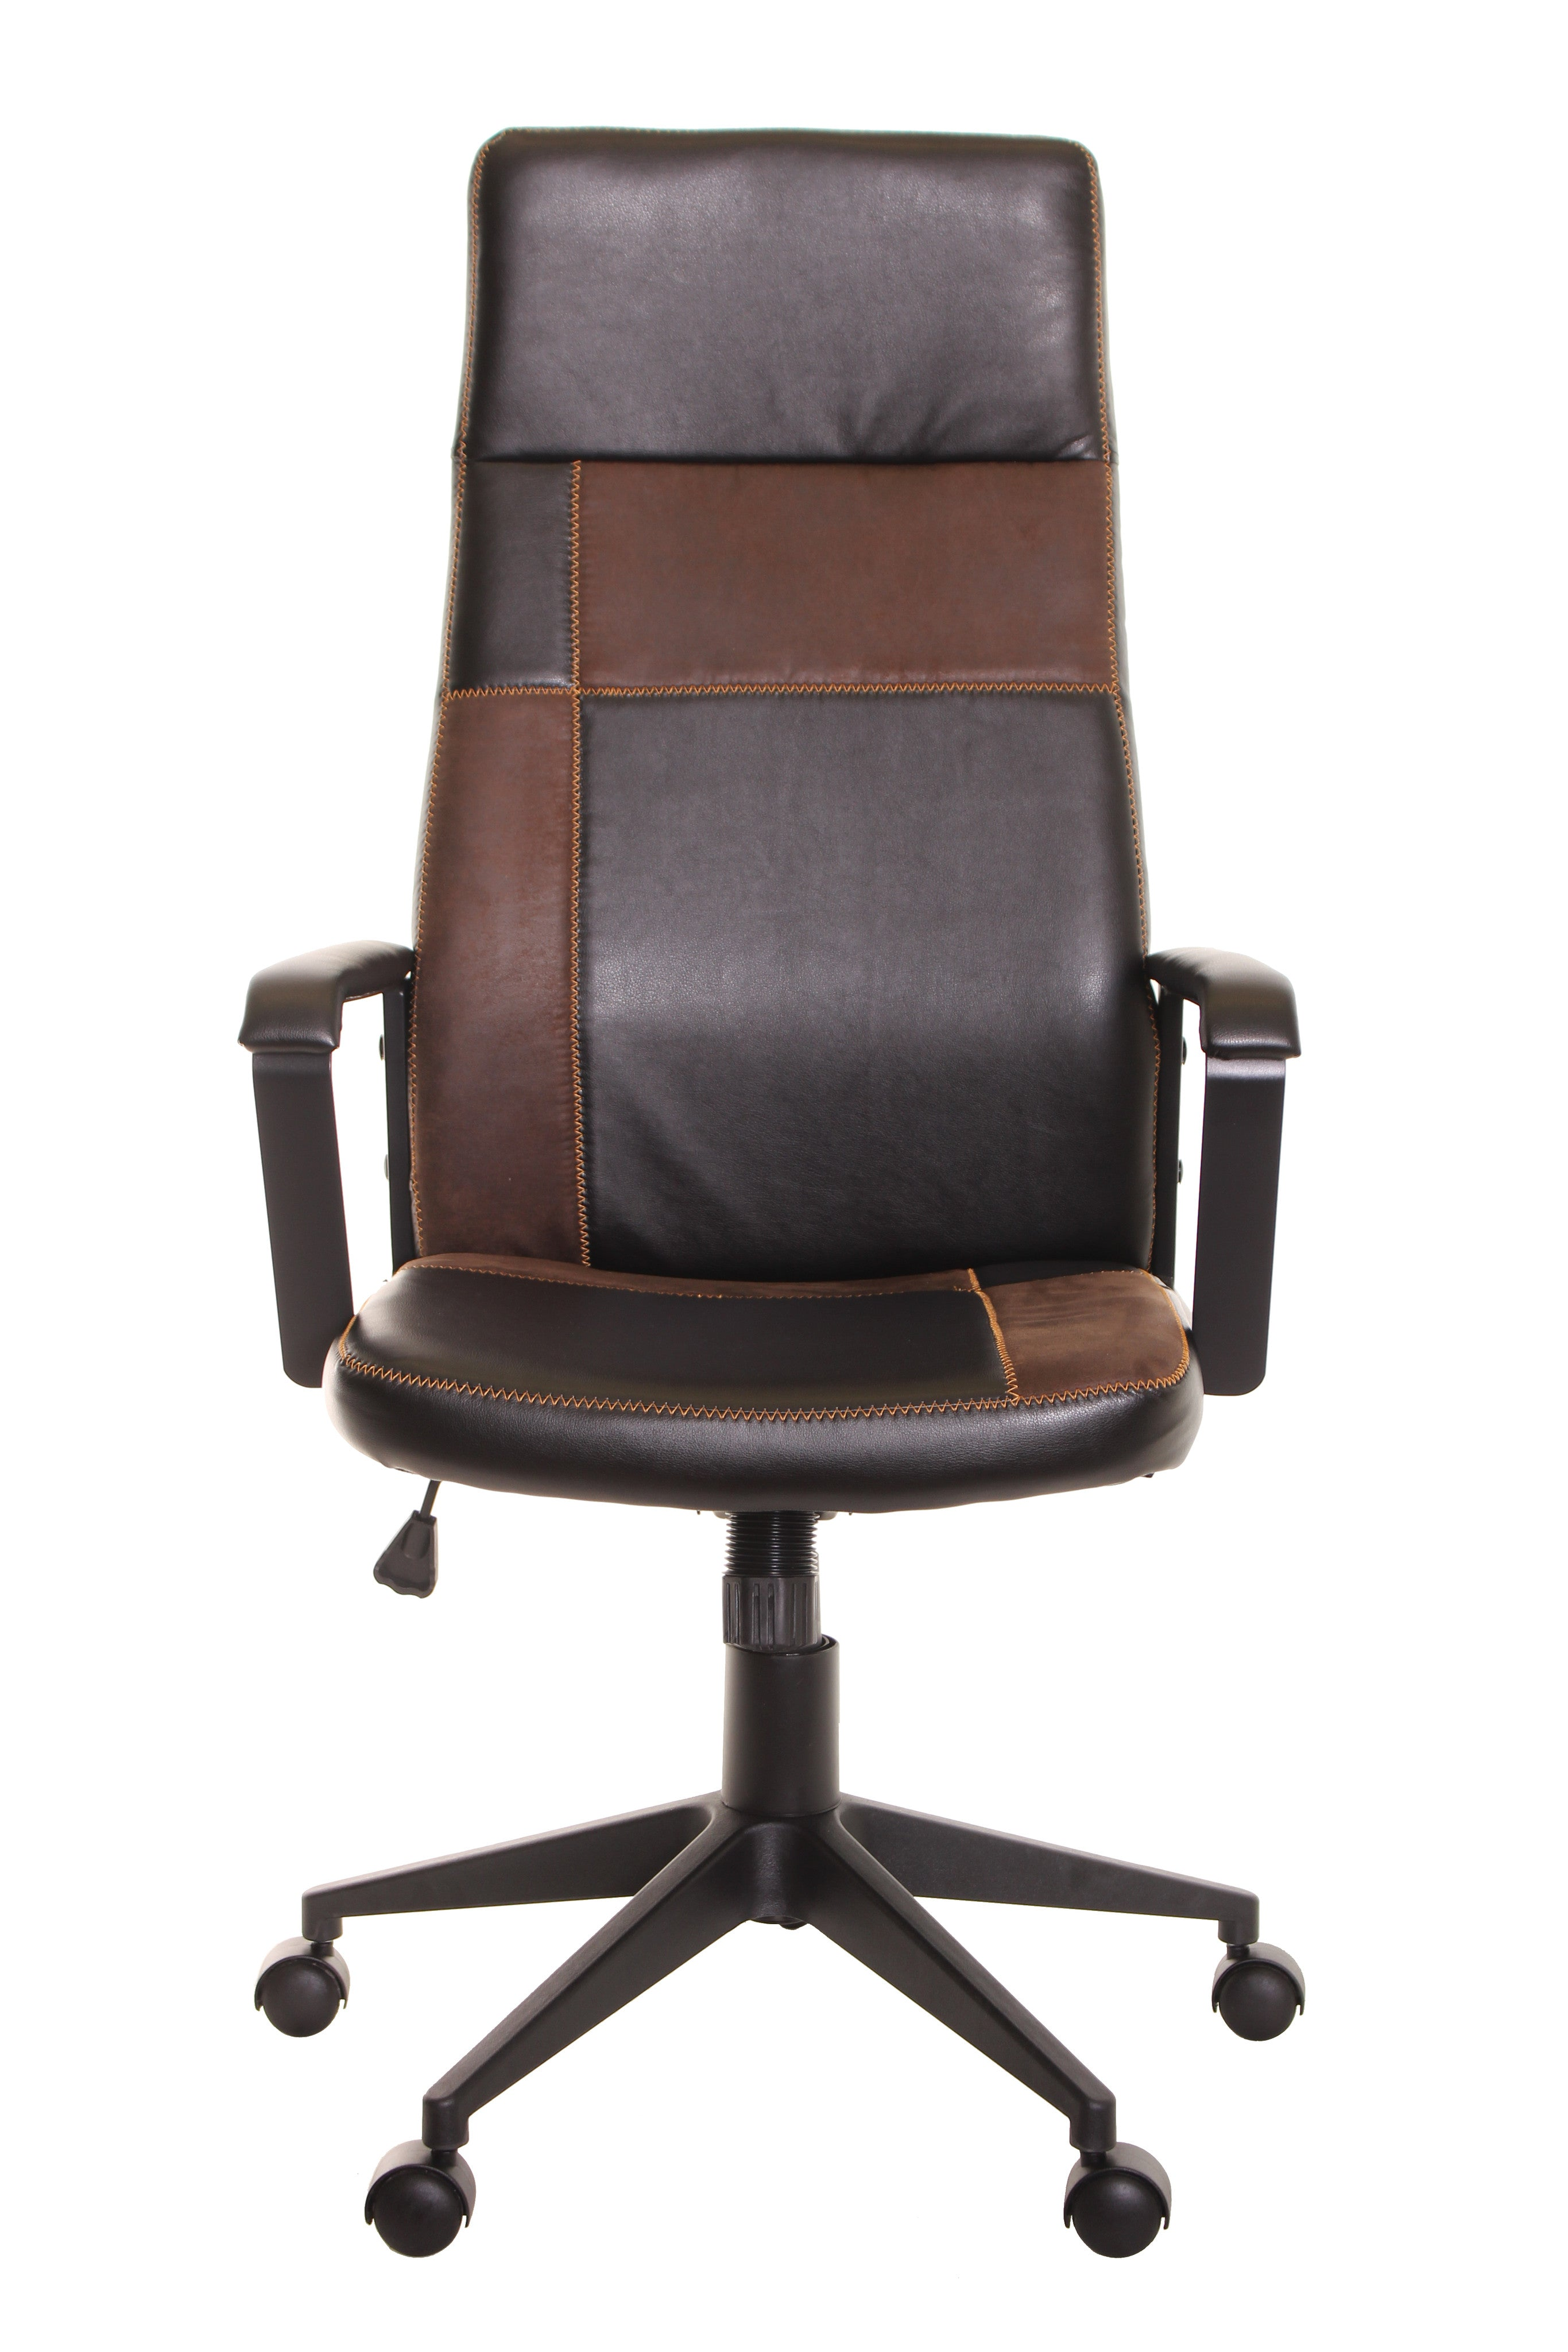 Emily High Back Desk Chair by Time fice – Time fice Furniture